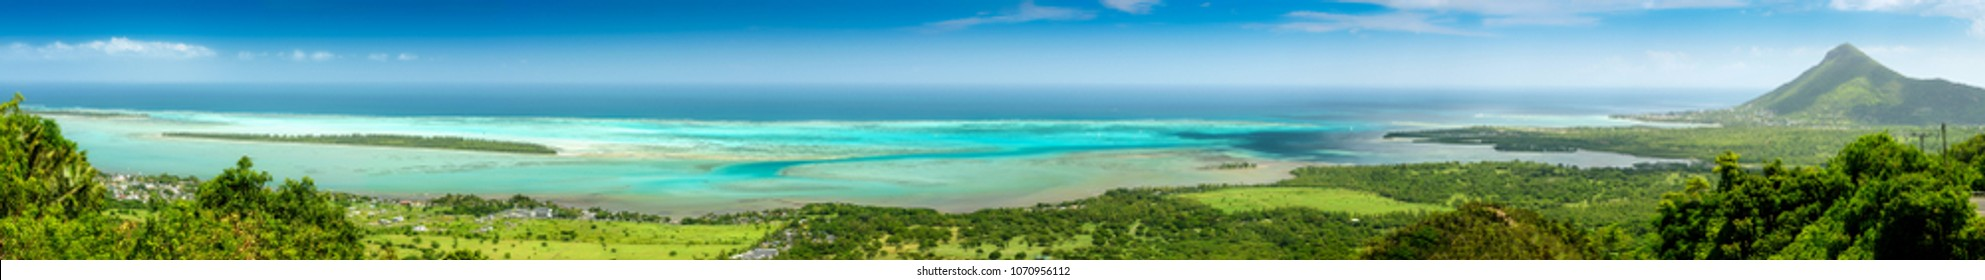 Detailed panorama of the south coast of Mauritius